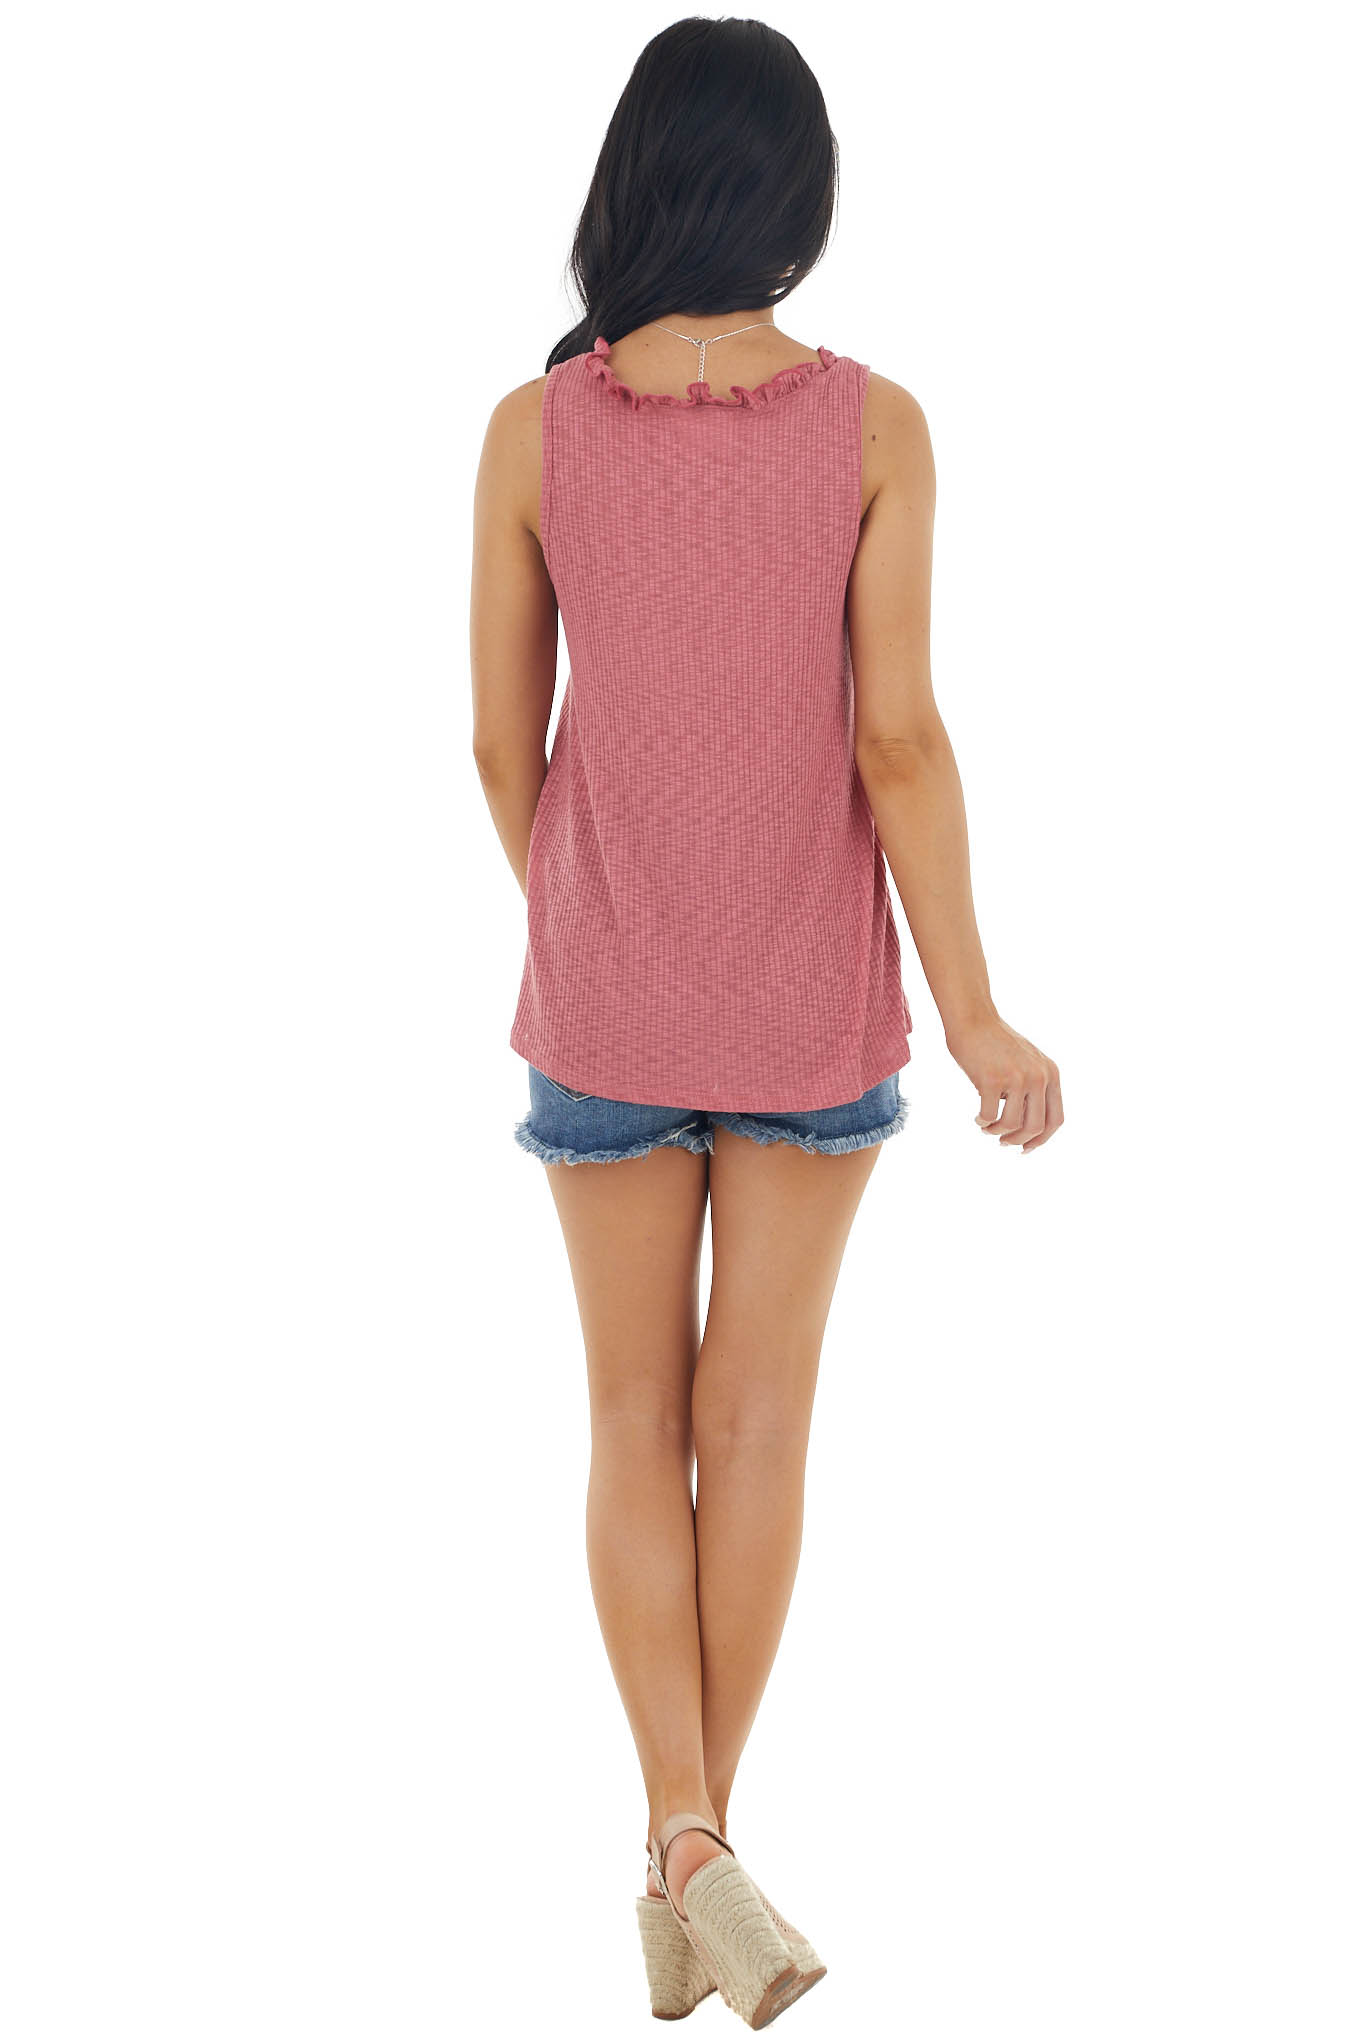 Vintage Berry Sleeveless Knit Tank Top with Lettuce Neckline